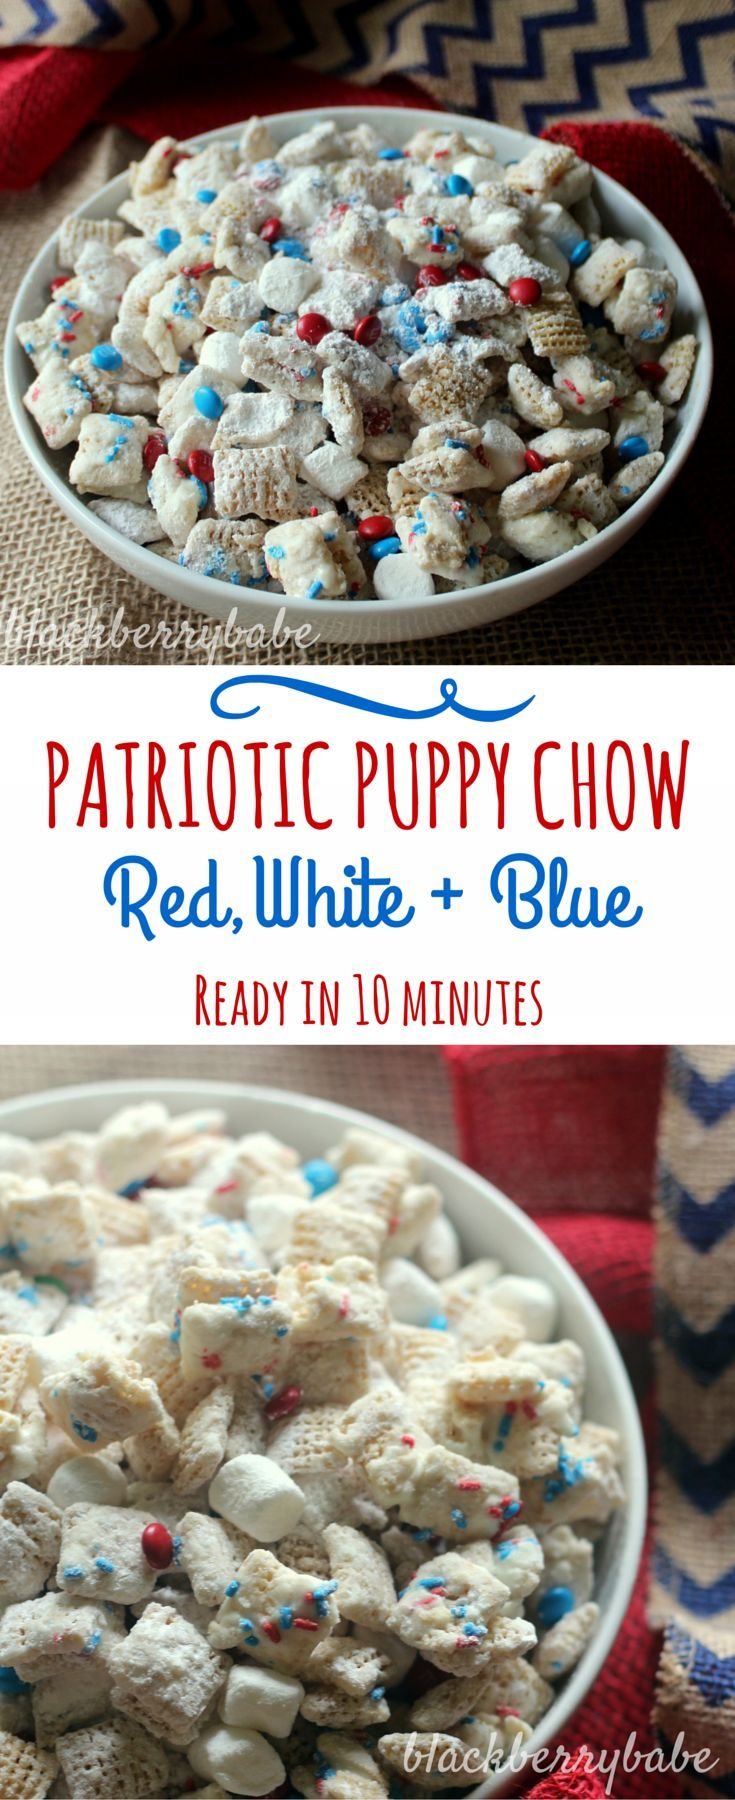 Patriotic Puppy Chow! Perfect easy dessert for the 4th of July. White Chocolate puppy chow mixed with red, white and blue M&Ms, sprnikles and marshmallows. YUM!